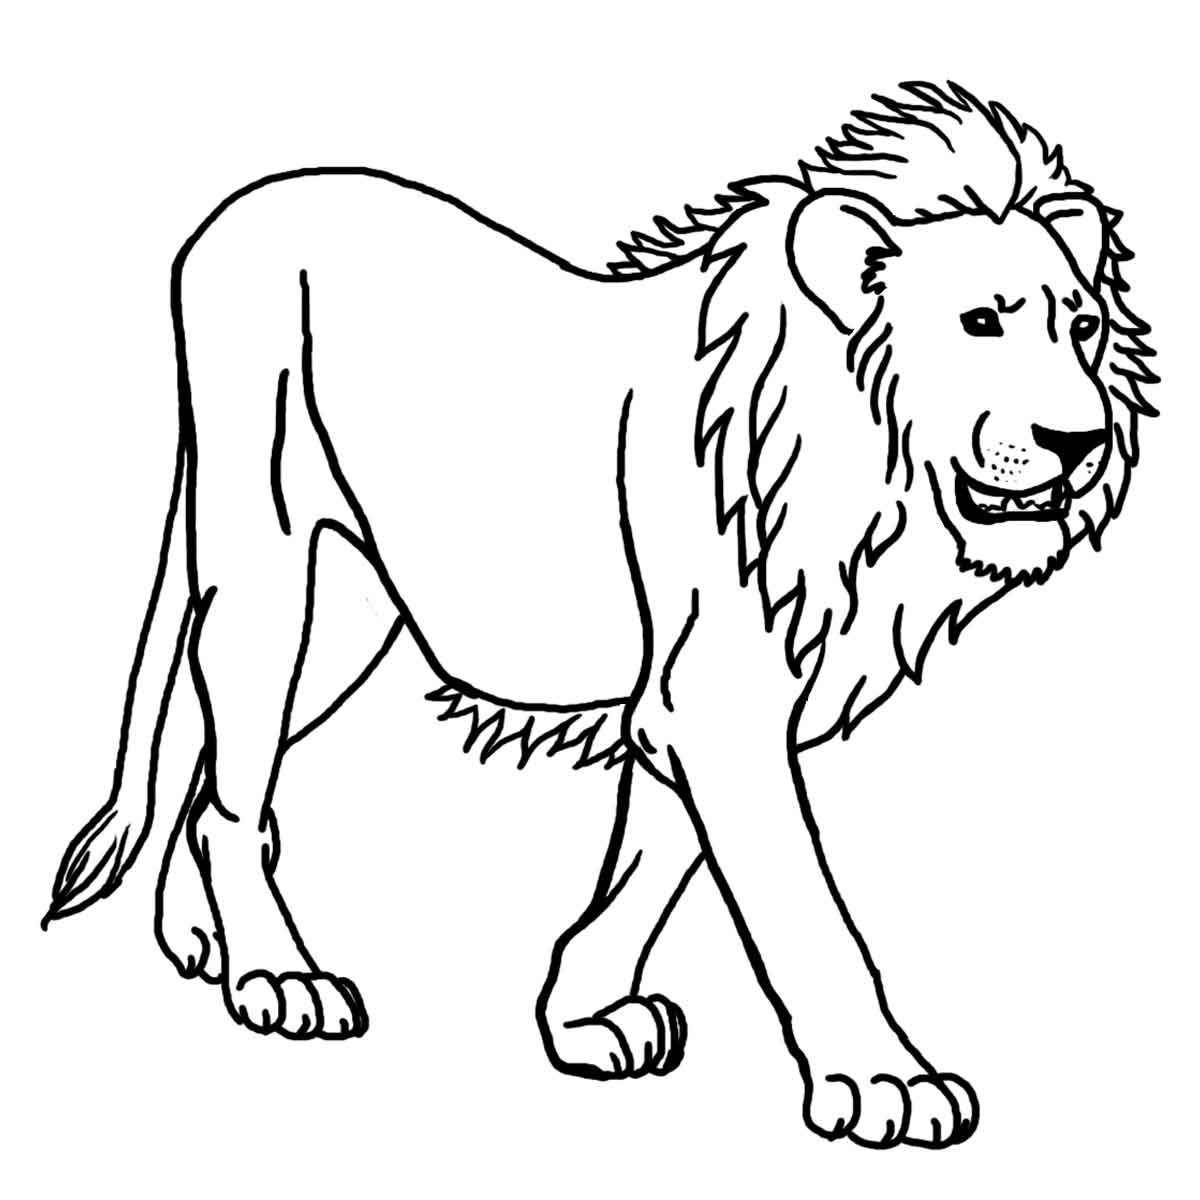 lion coloring pages realistic dragons - photo#1